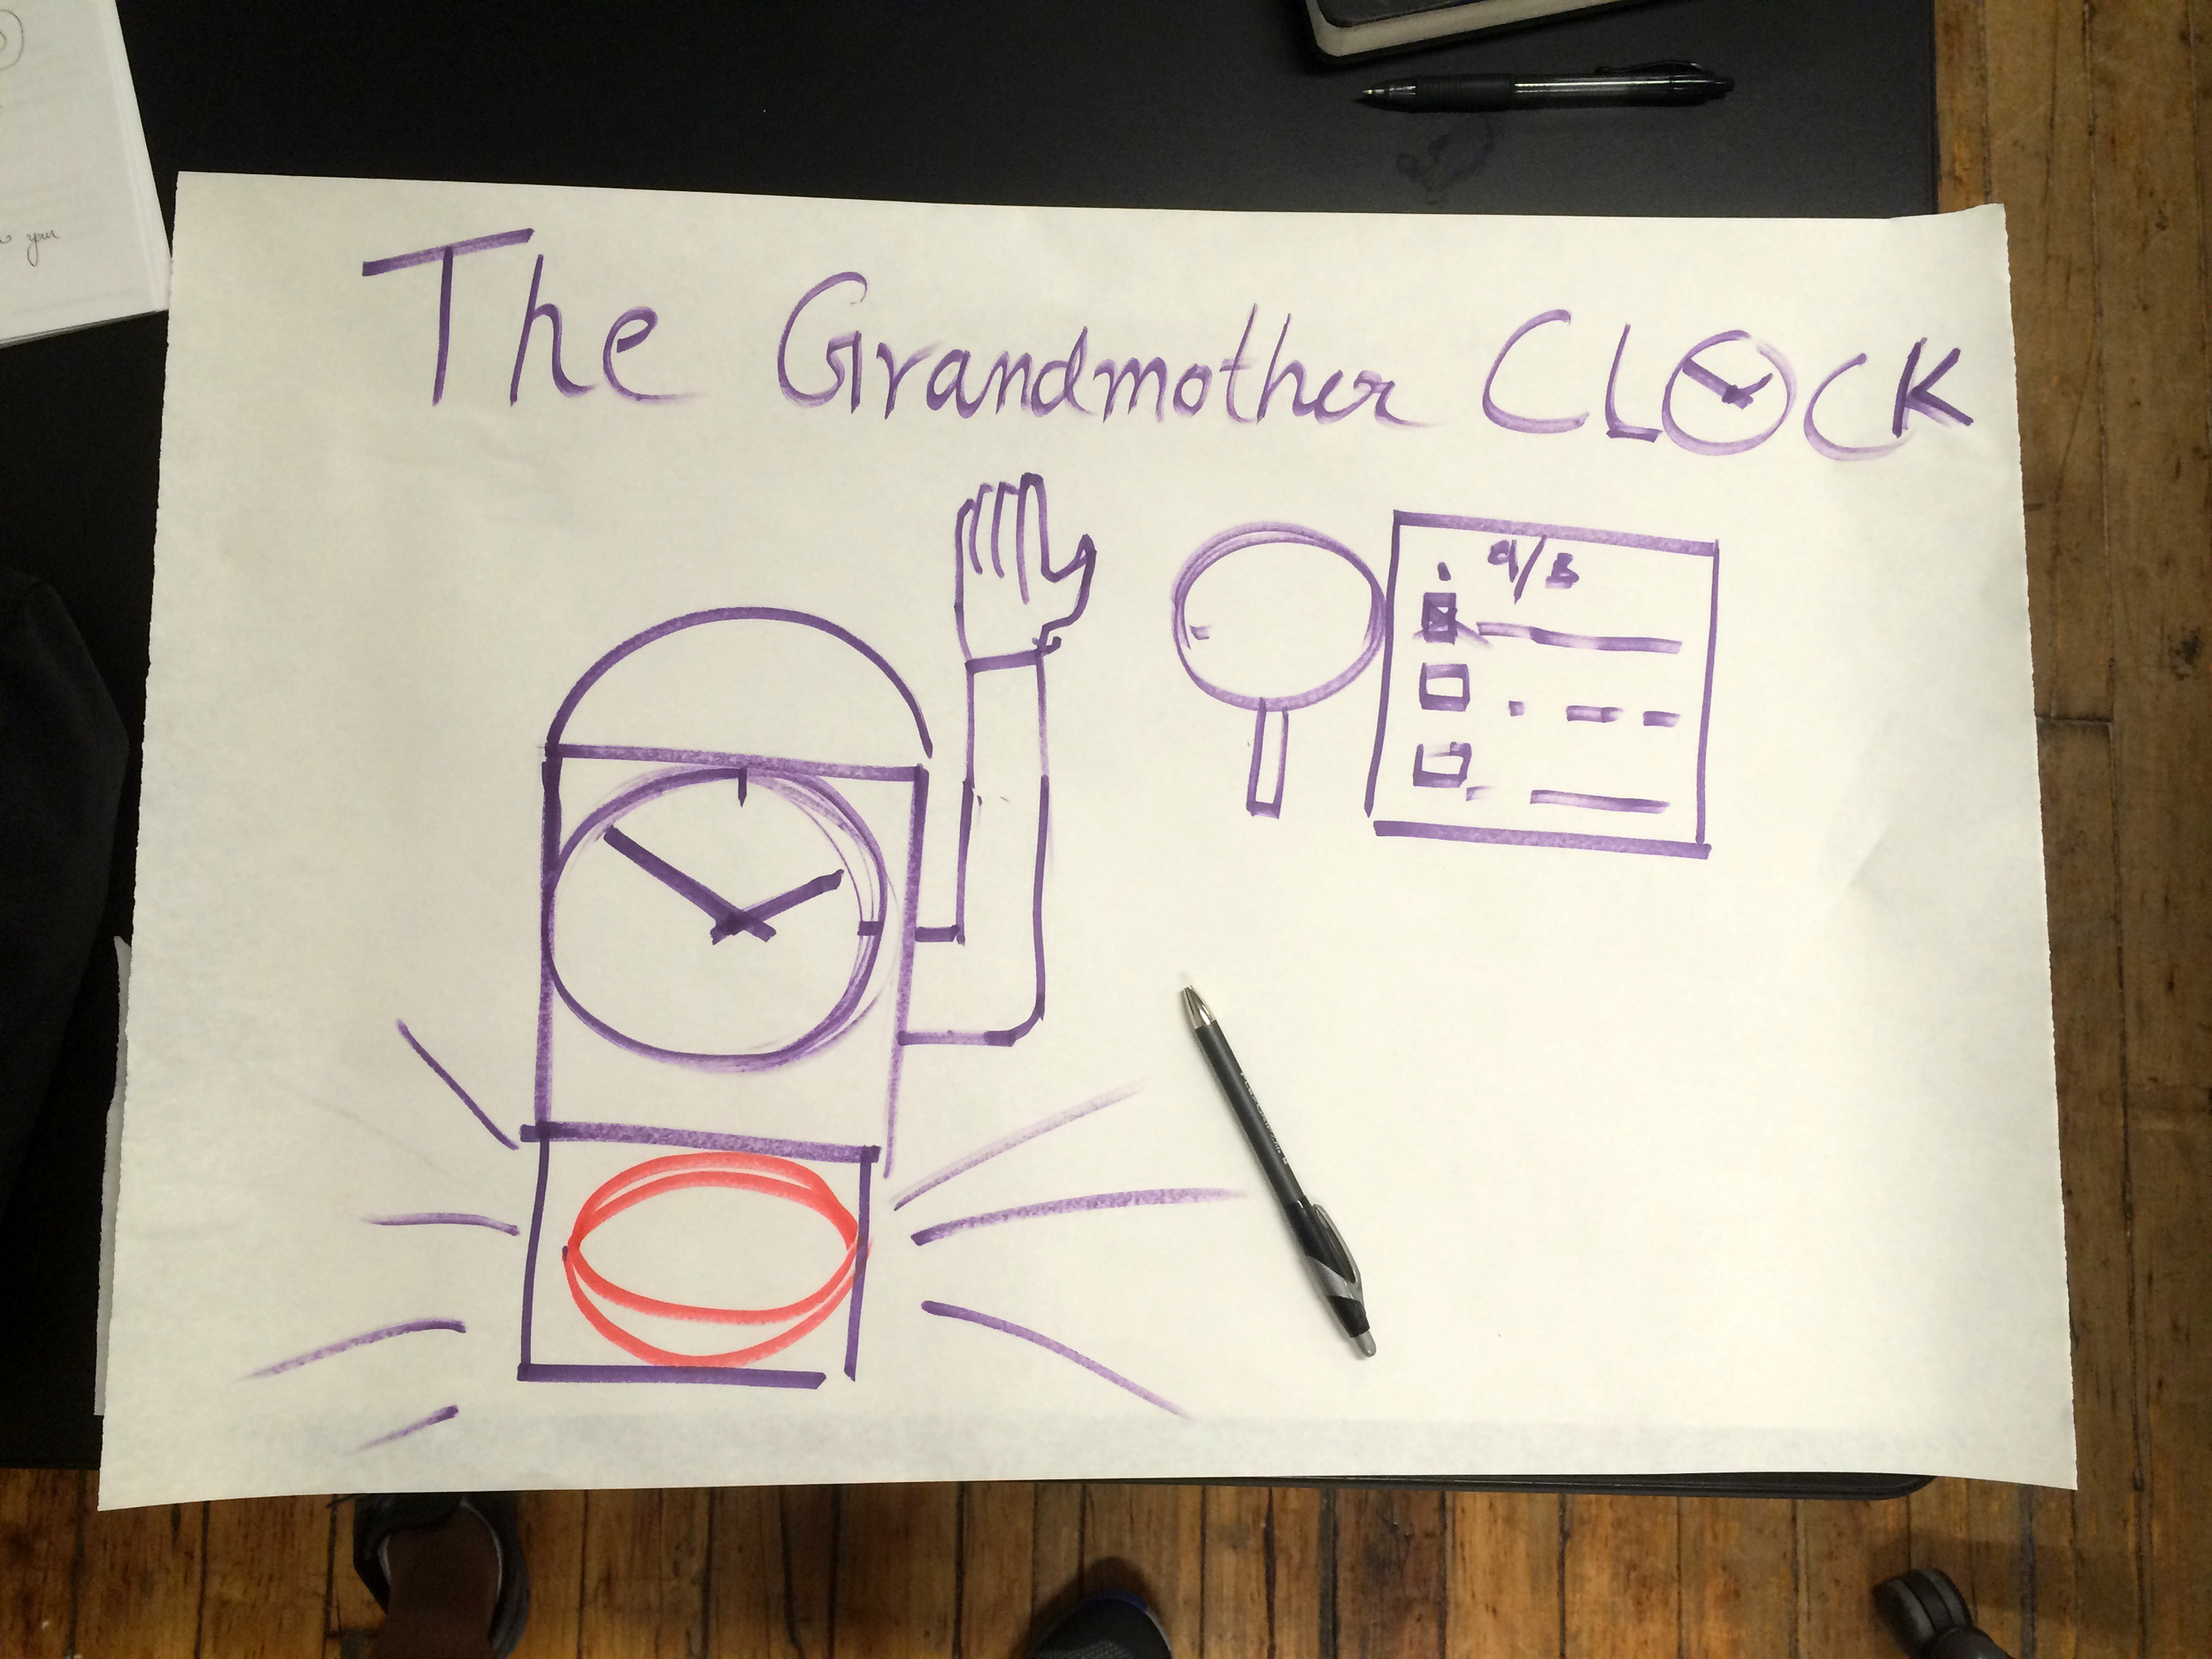 The Grandmother Clock